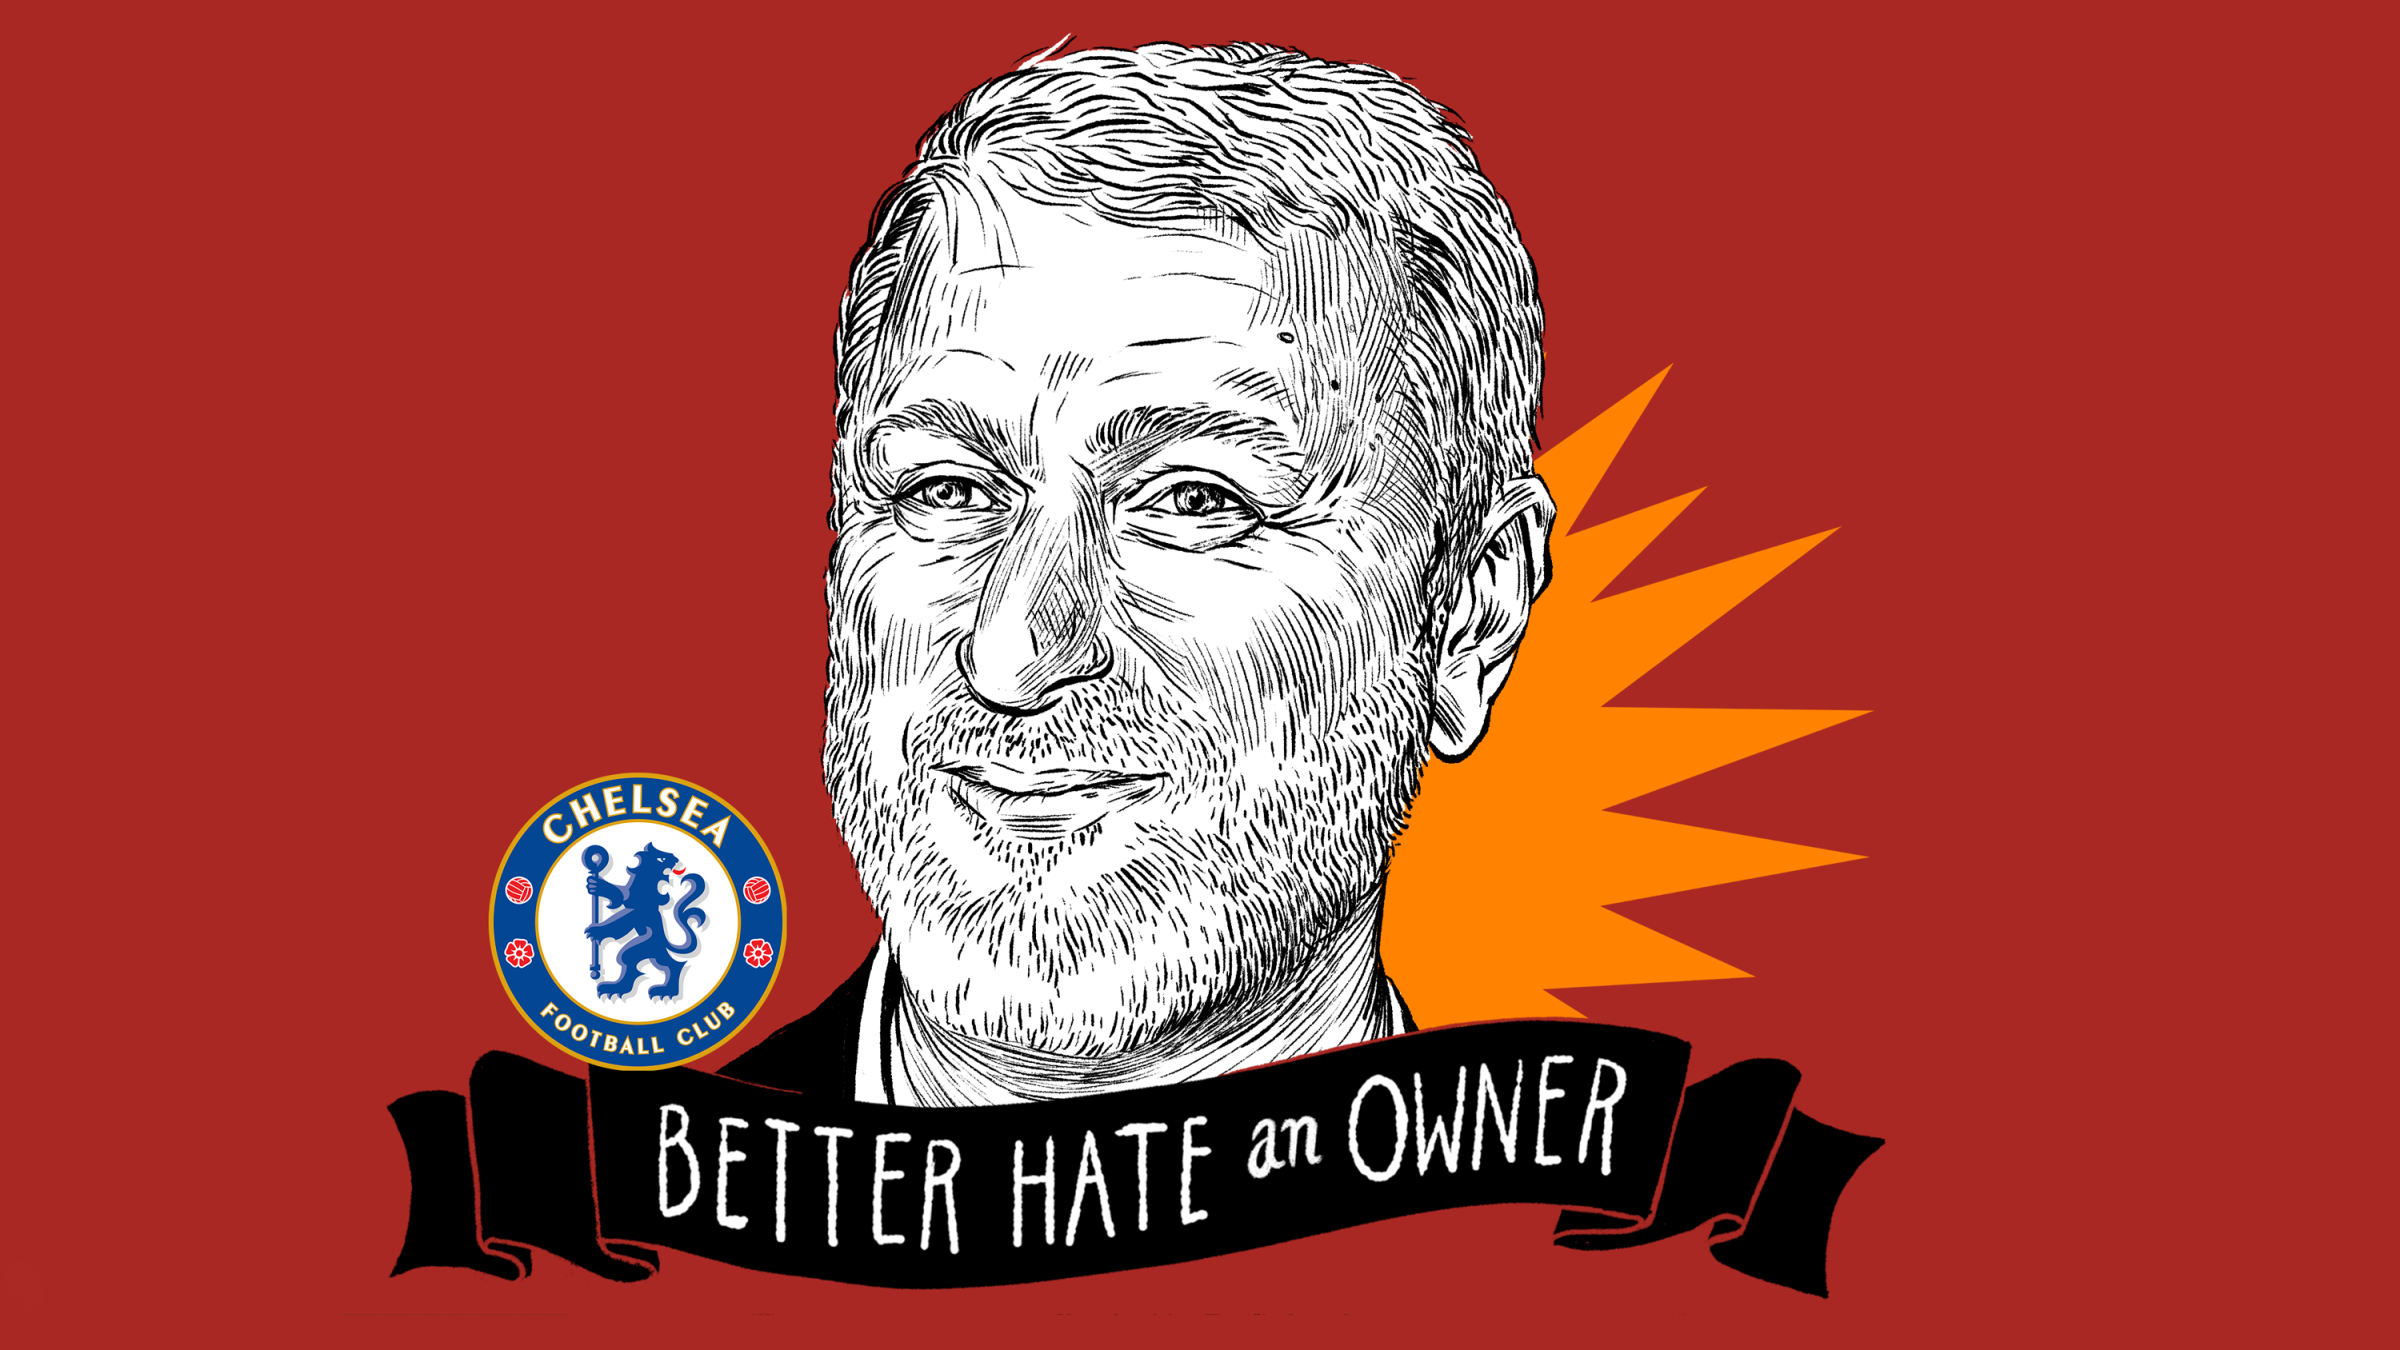 Very cool illustration of Chelsea owner Roman Abramovich.